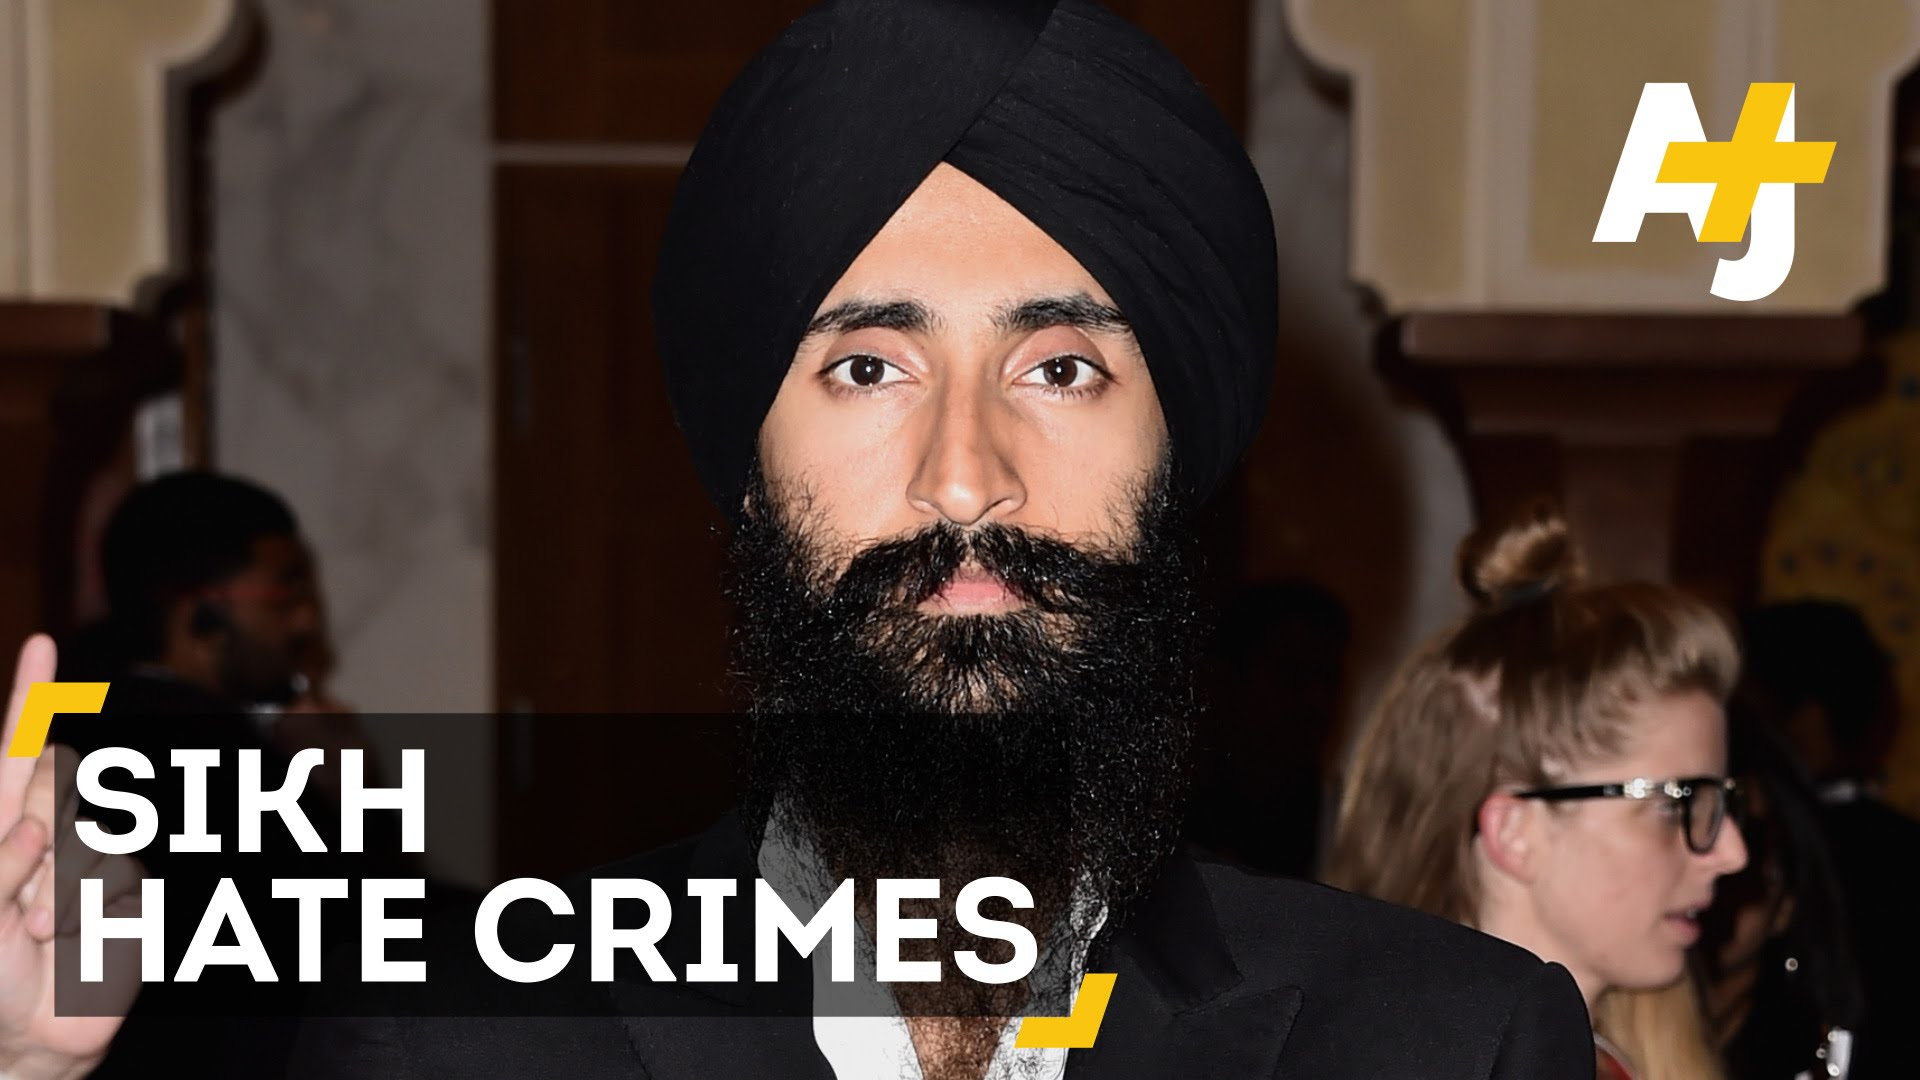 Discrimination Against Sikhs Has Risen After 9/11